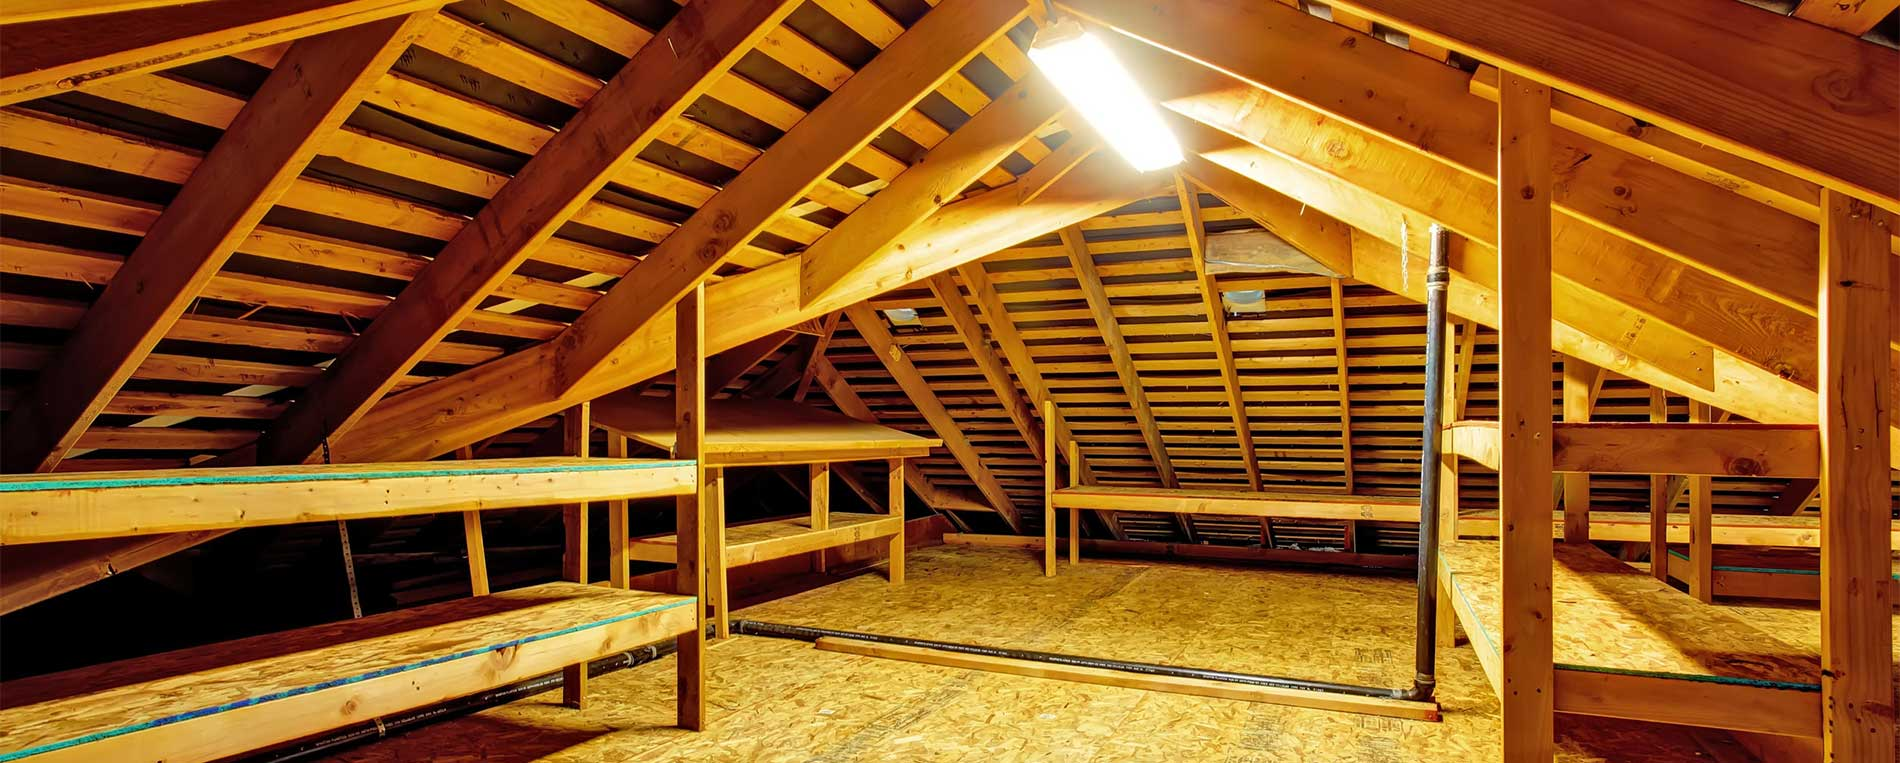 Attic Rodent Proofing & Anti Rodent Insulation   Alameda, CA